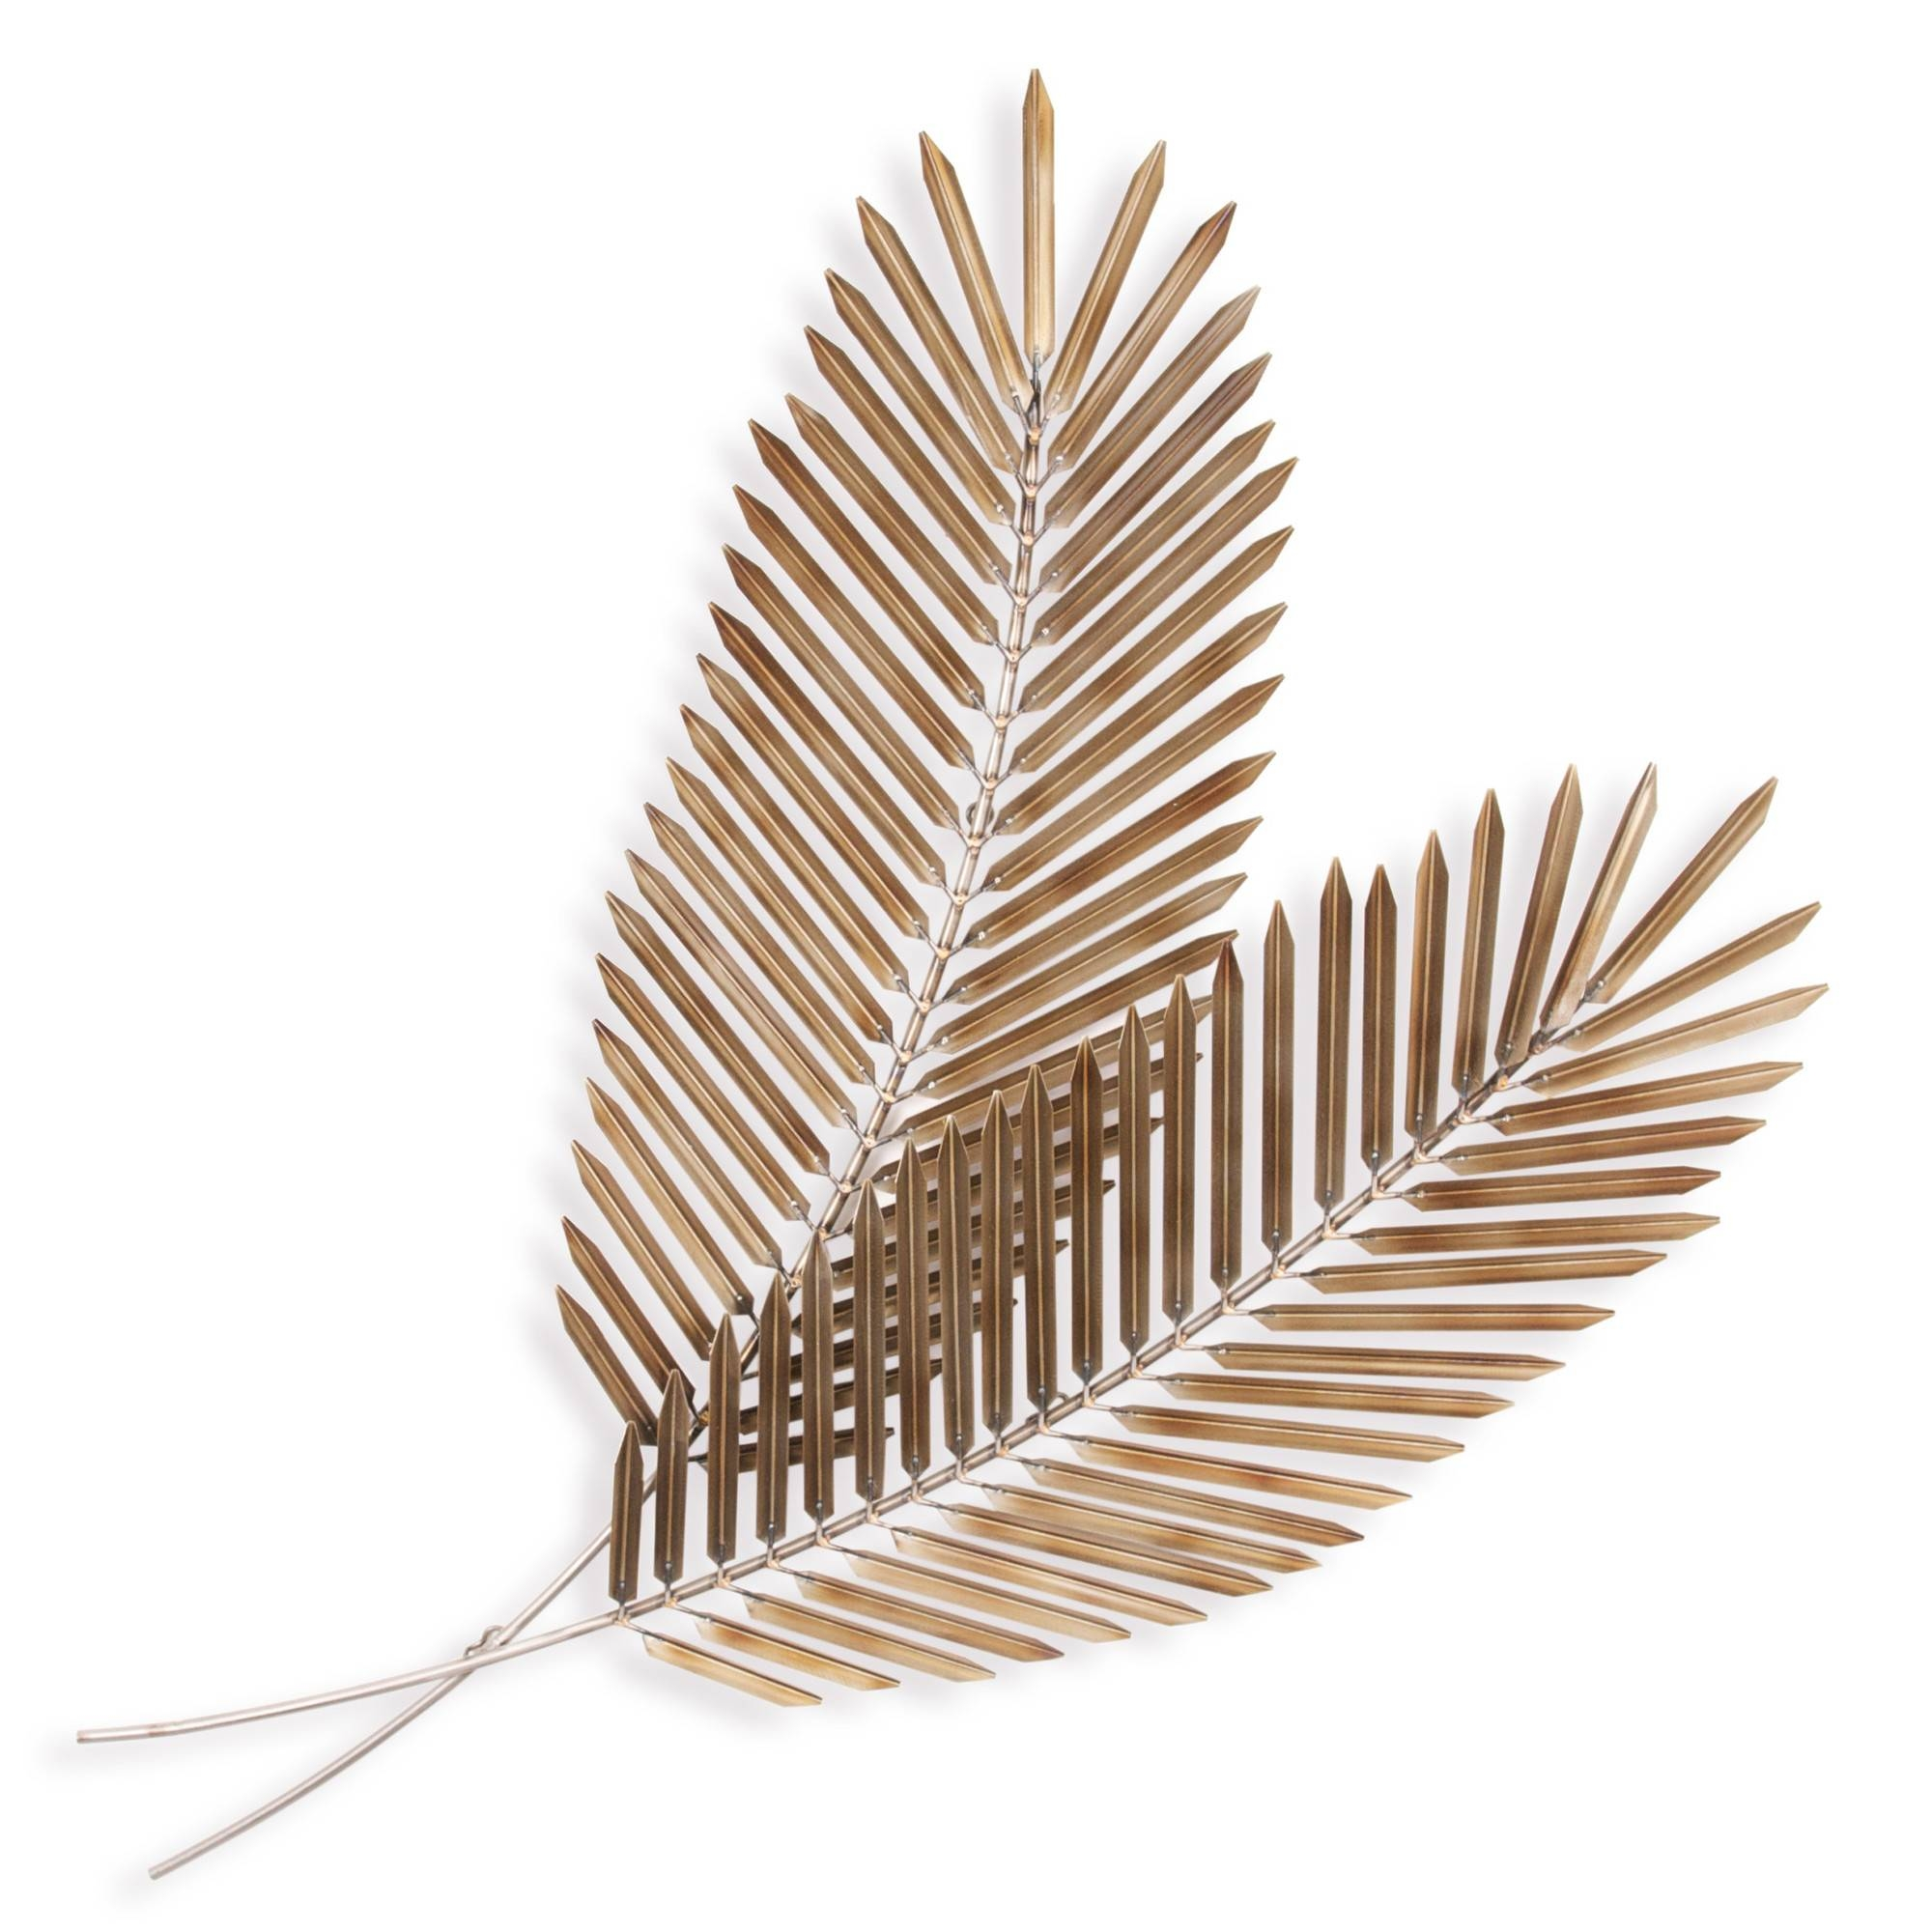 Palm Leaves Pair – Floral Metal Wall Art With Regard To Recent Leaf Metal Wall Art (View 3 of 20)